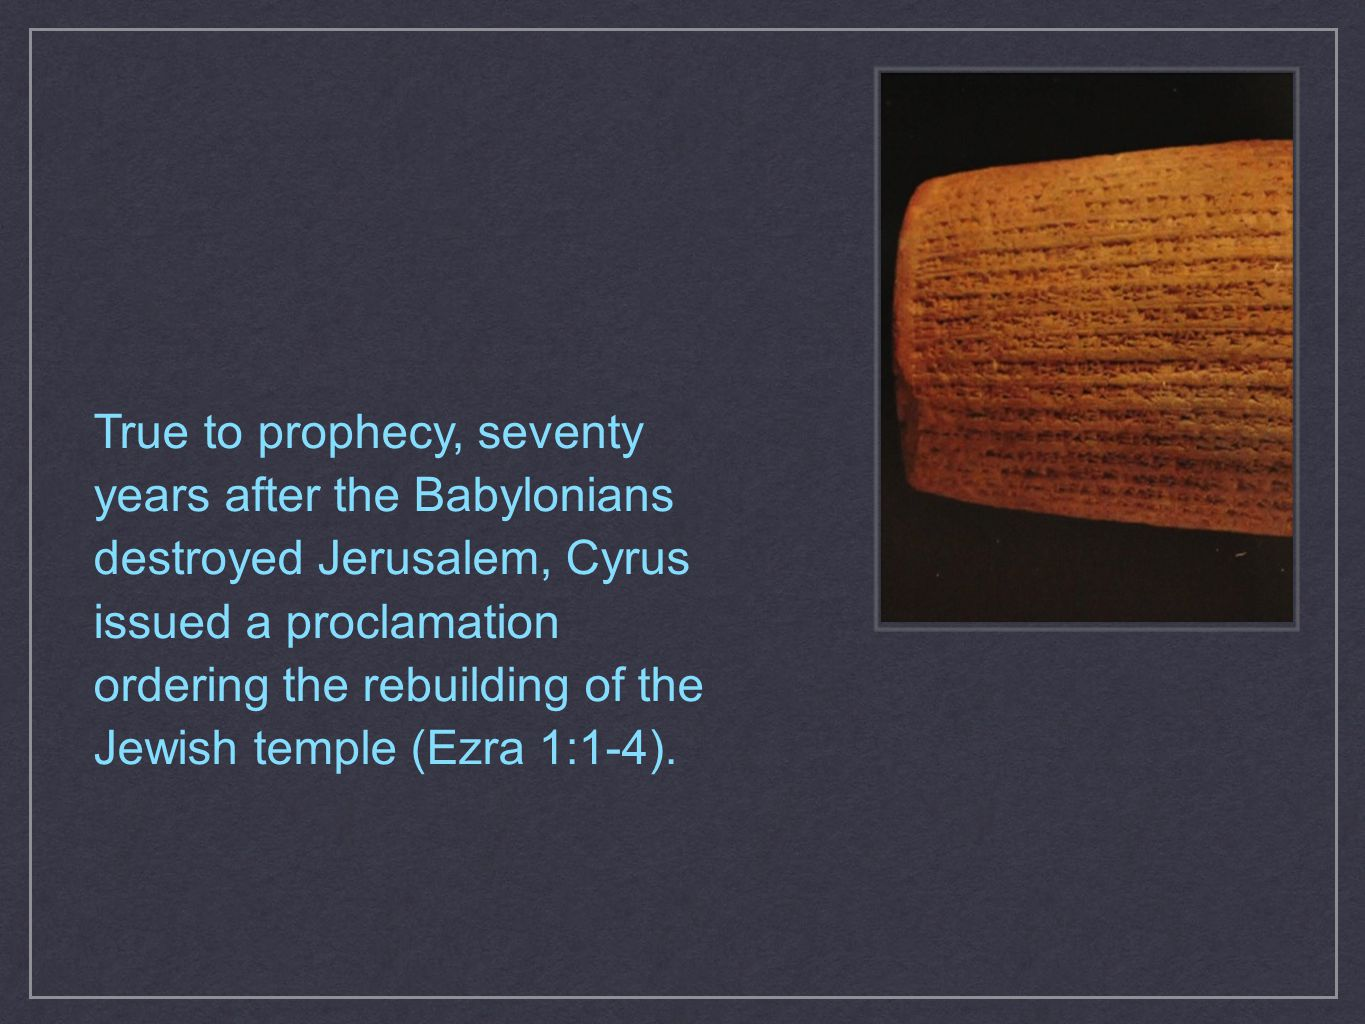 True to prophecy, seventy years after the Babylonians destroyed Jerusalem, Cyrus issued a proclamation ordering the rebuilding of the Jewish temple (E